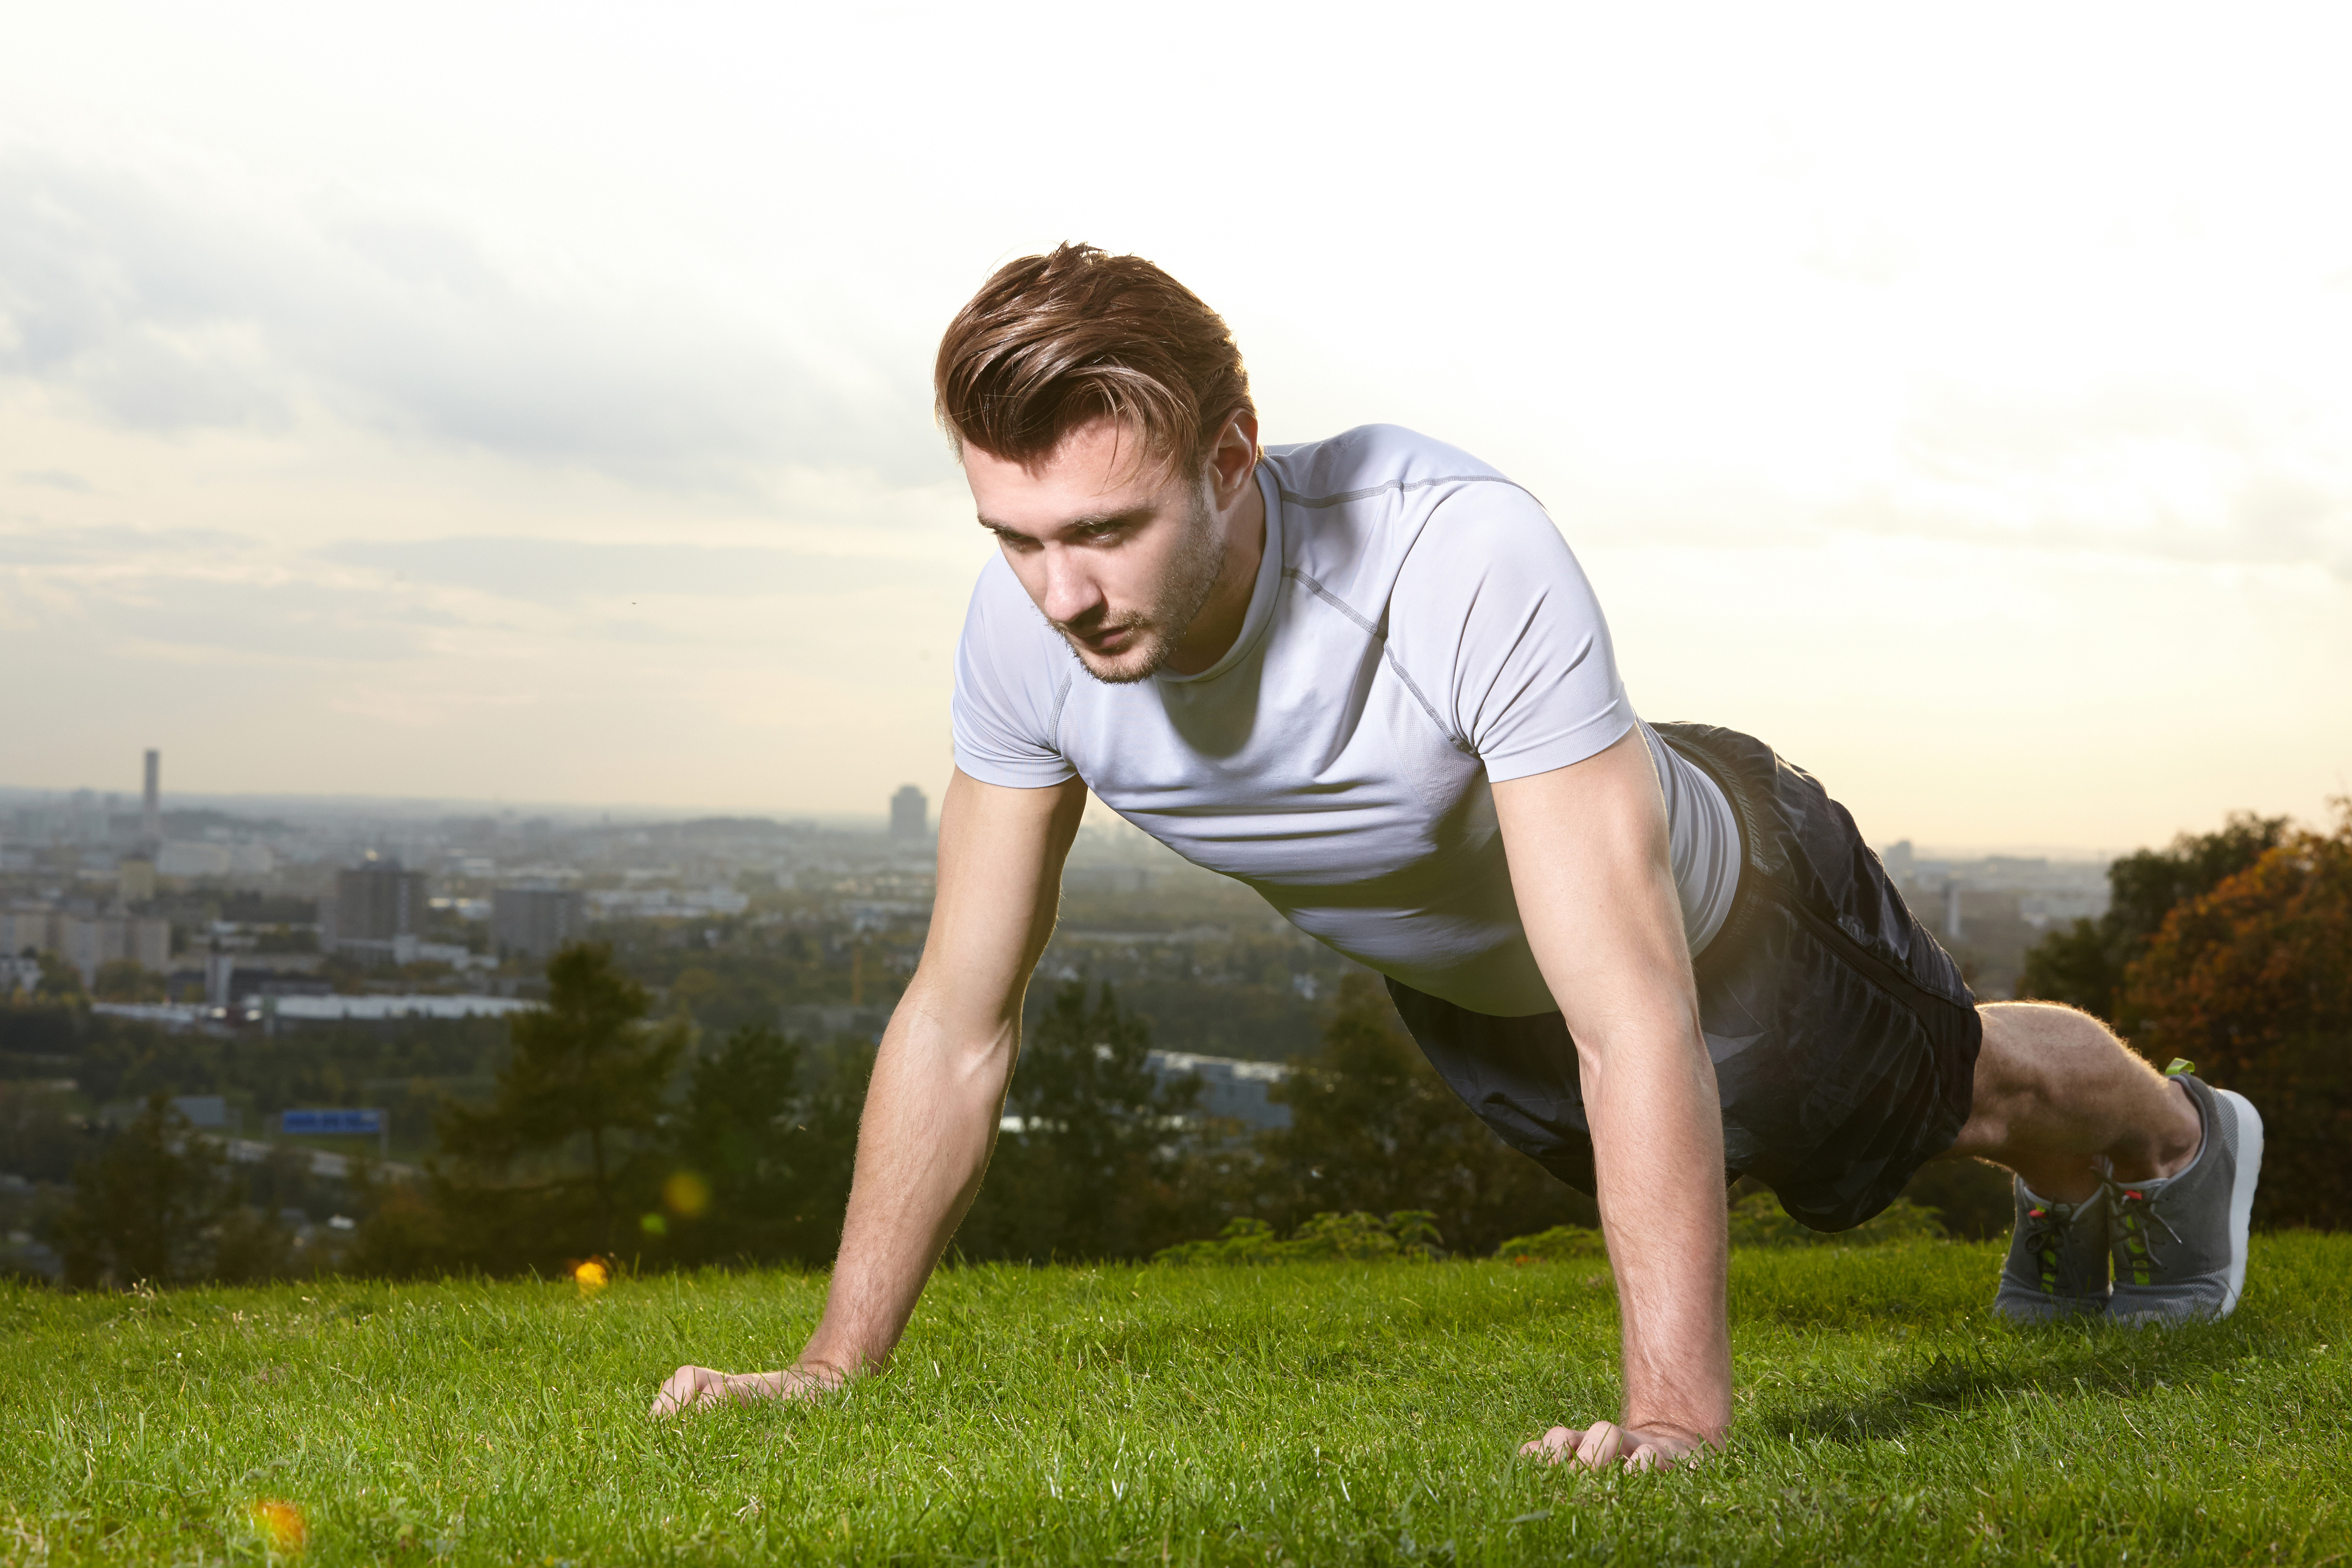 The Total Body Workout You Can Do In An Empty Field Mens Journal Bodyweight Circuit Be Your Change Holger Thalmann Getty Images 1 7